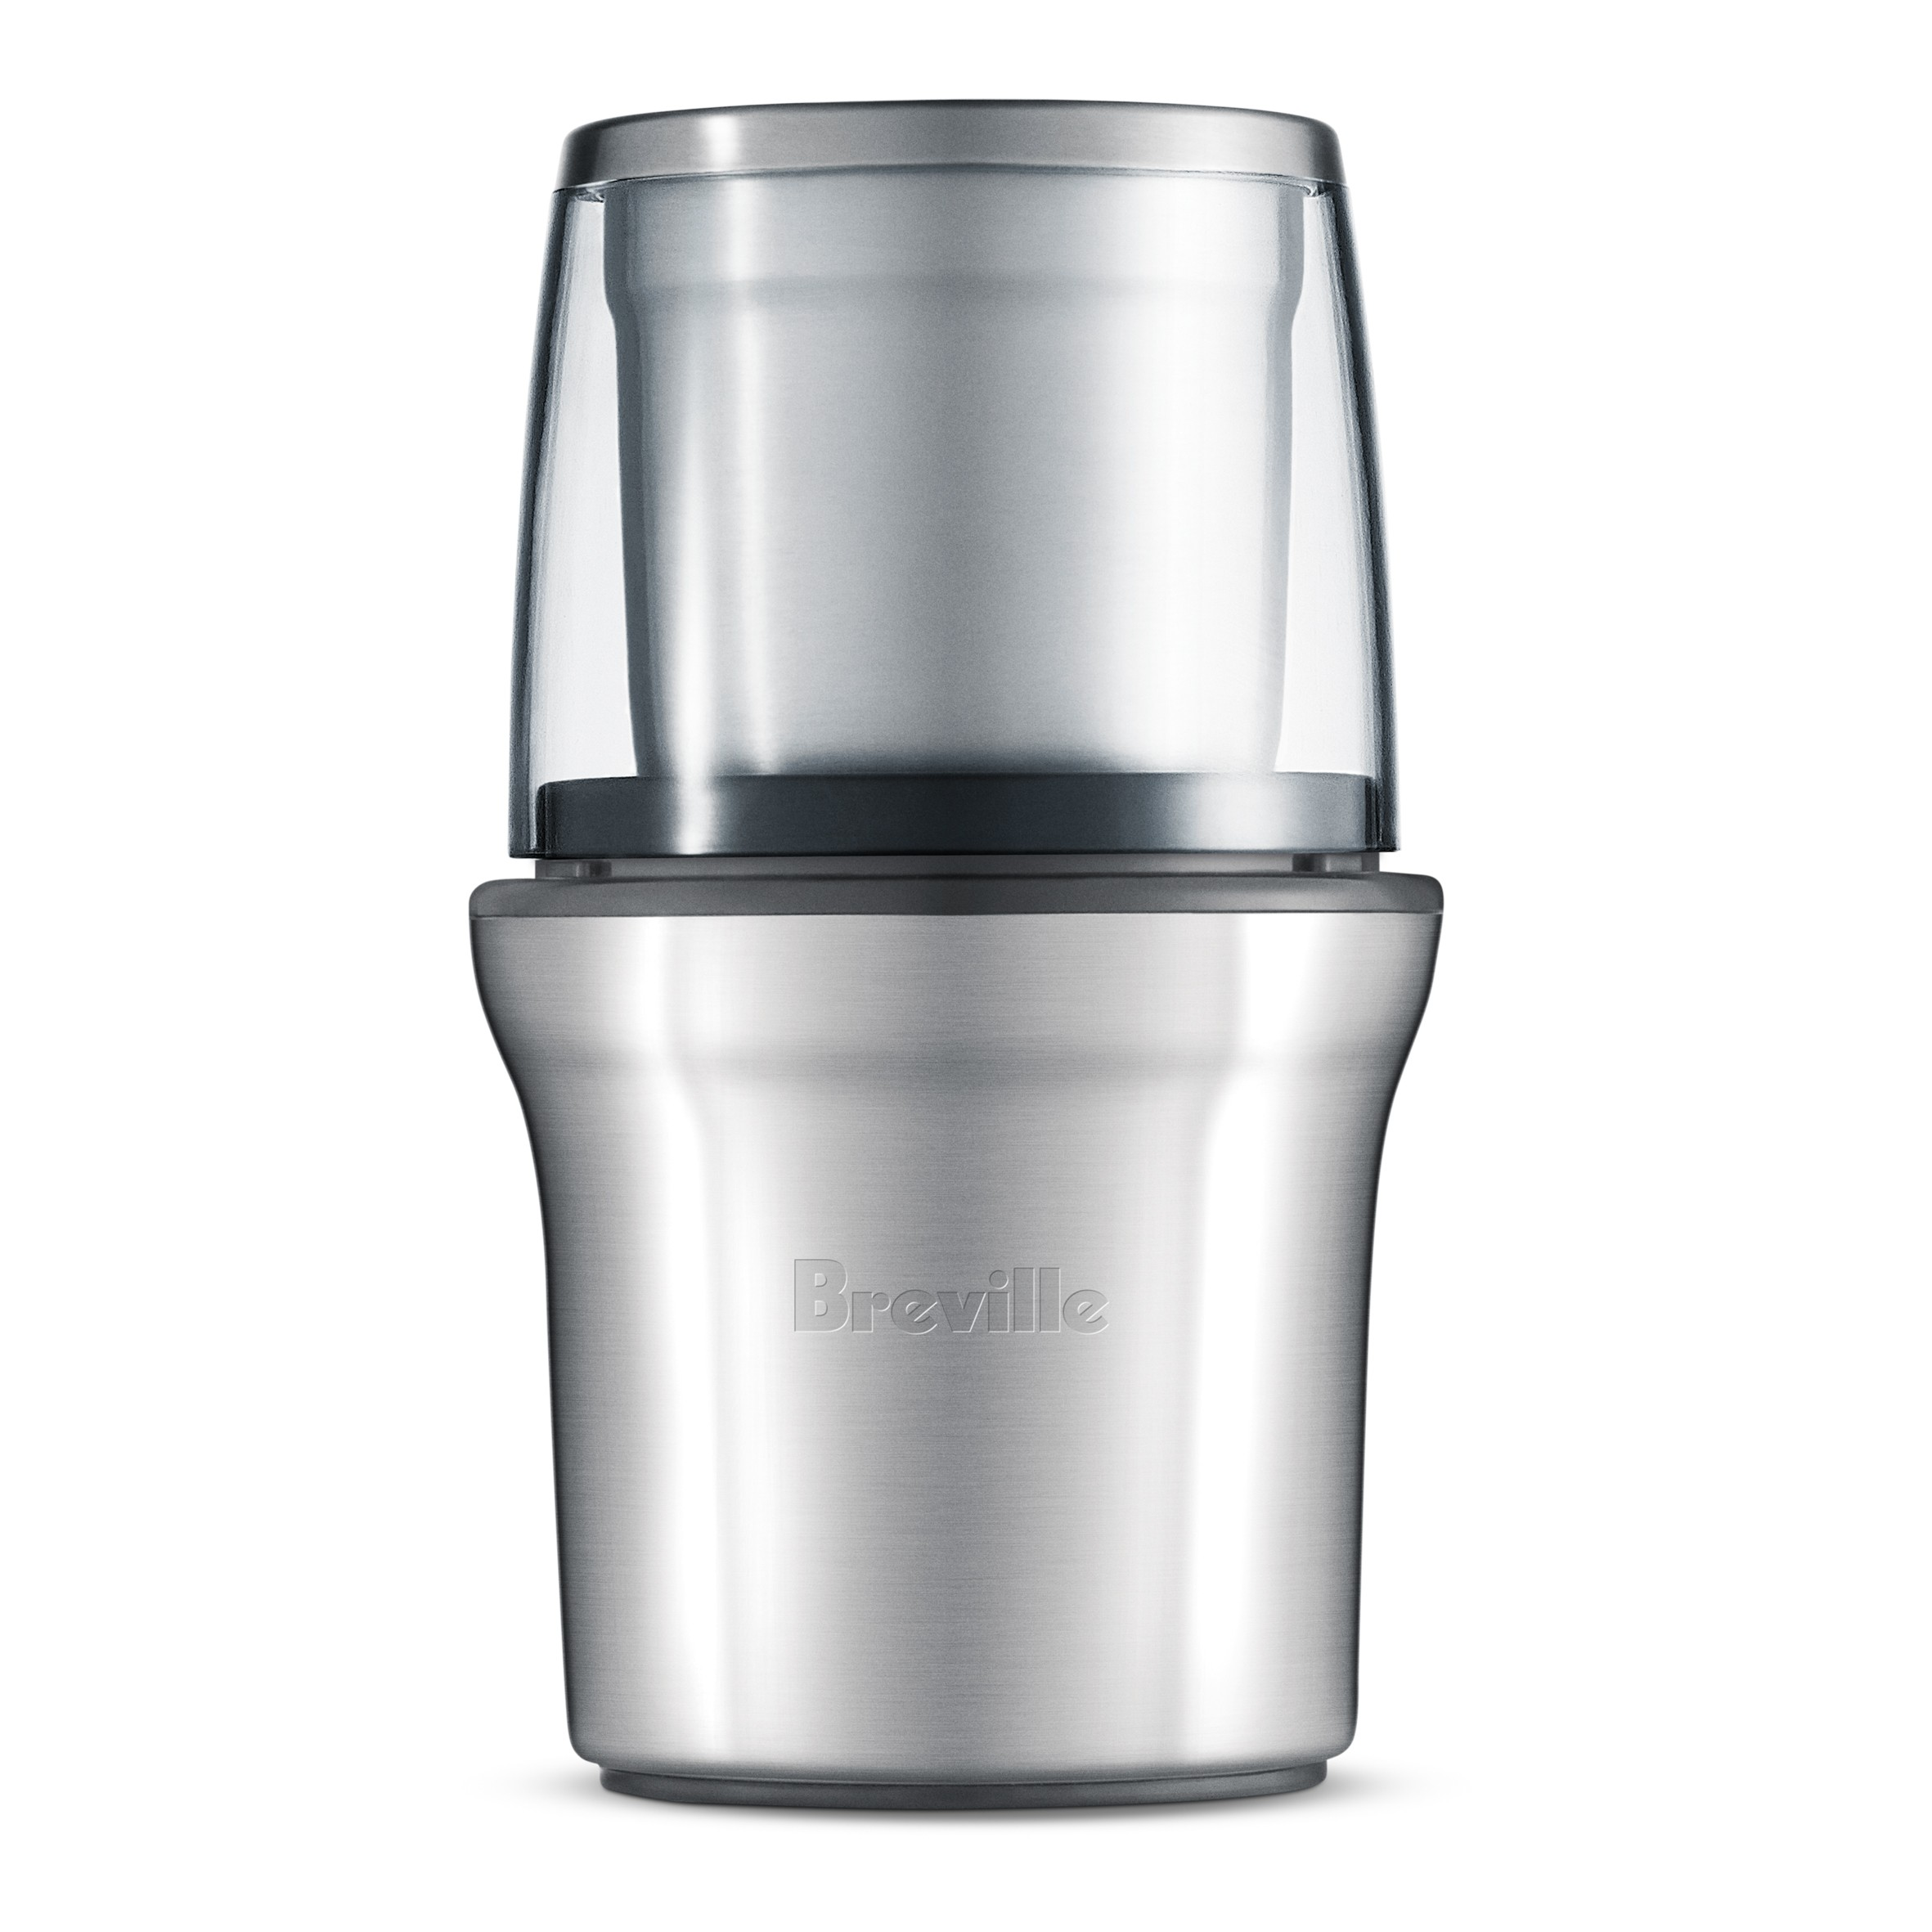 Breville Coffee And Spice Grinder Review